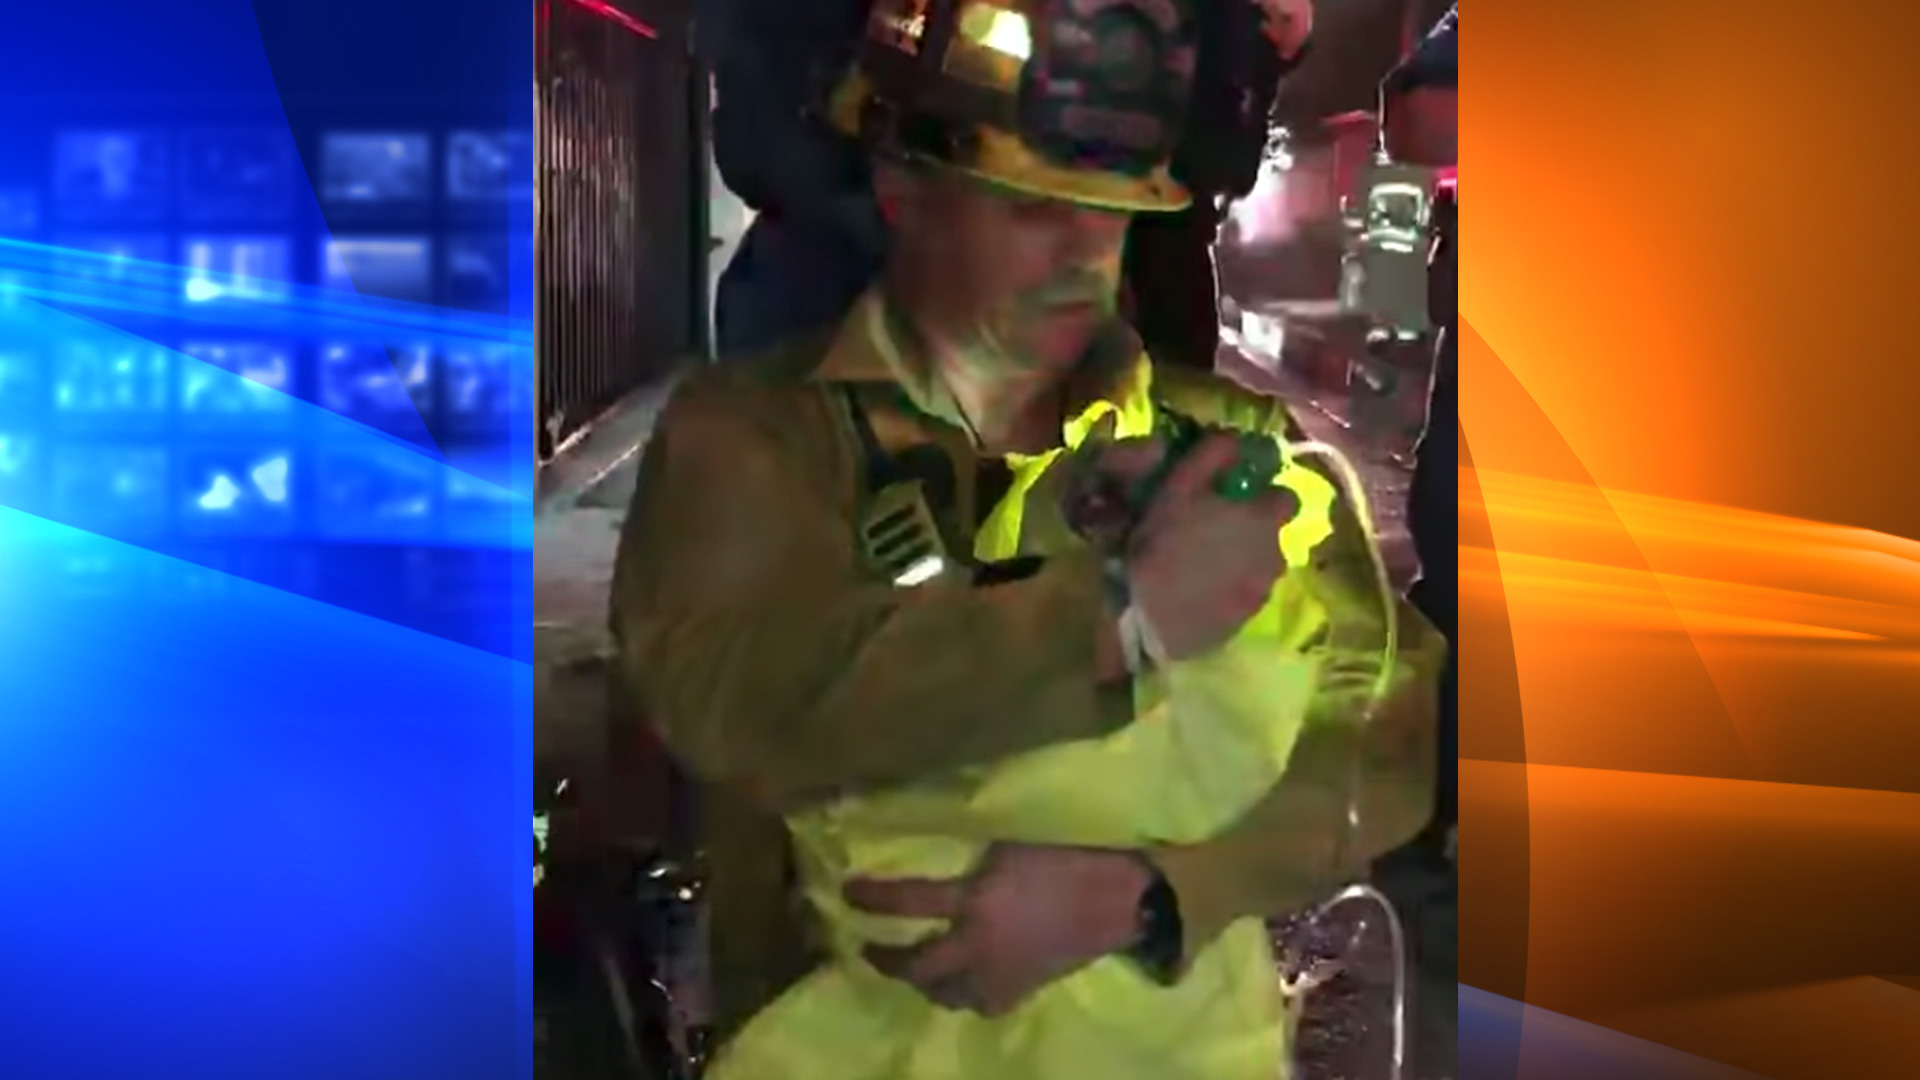 The Downey Fire Department posted a video on April 21, 2020, of a dog being resuscitated with a pet oxygen mask.